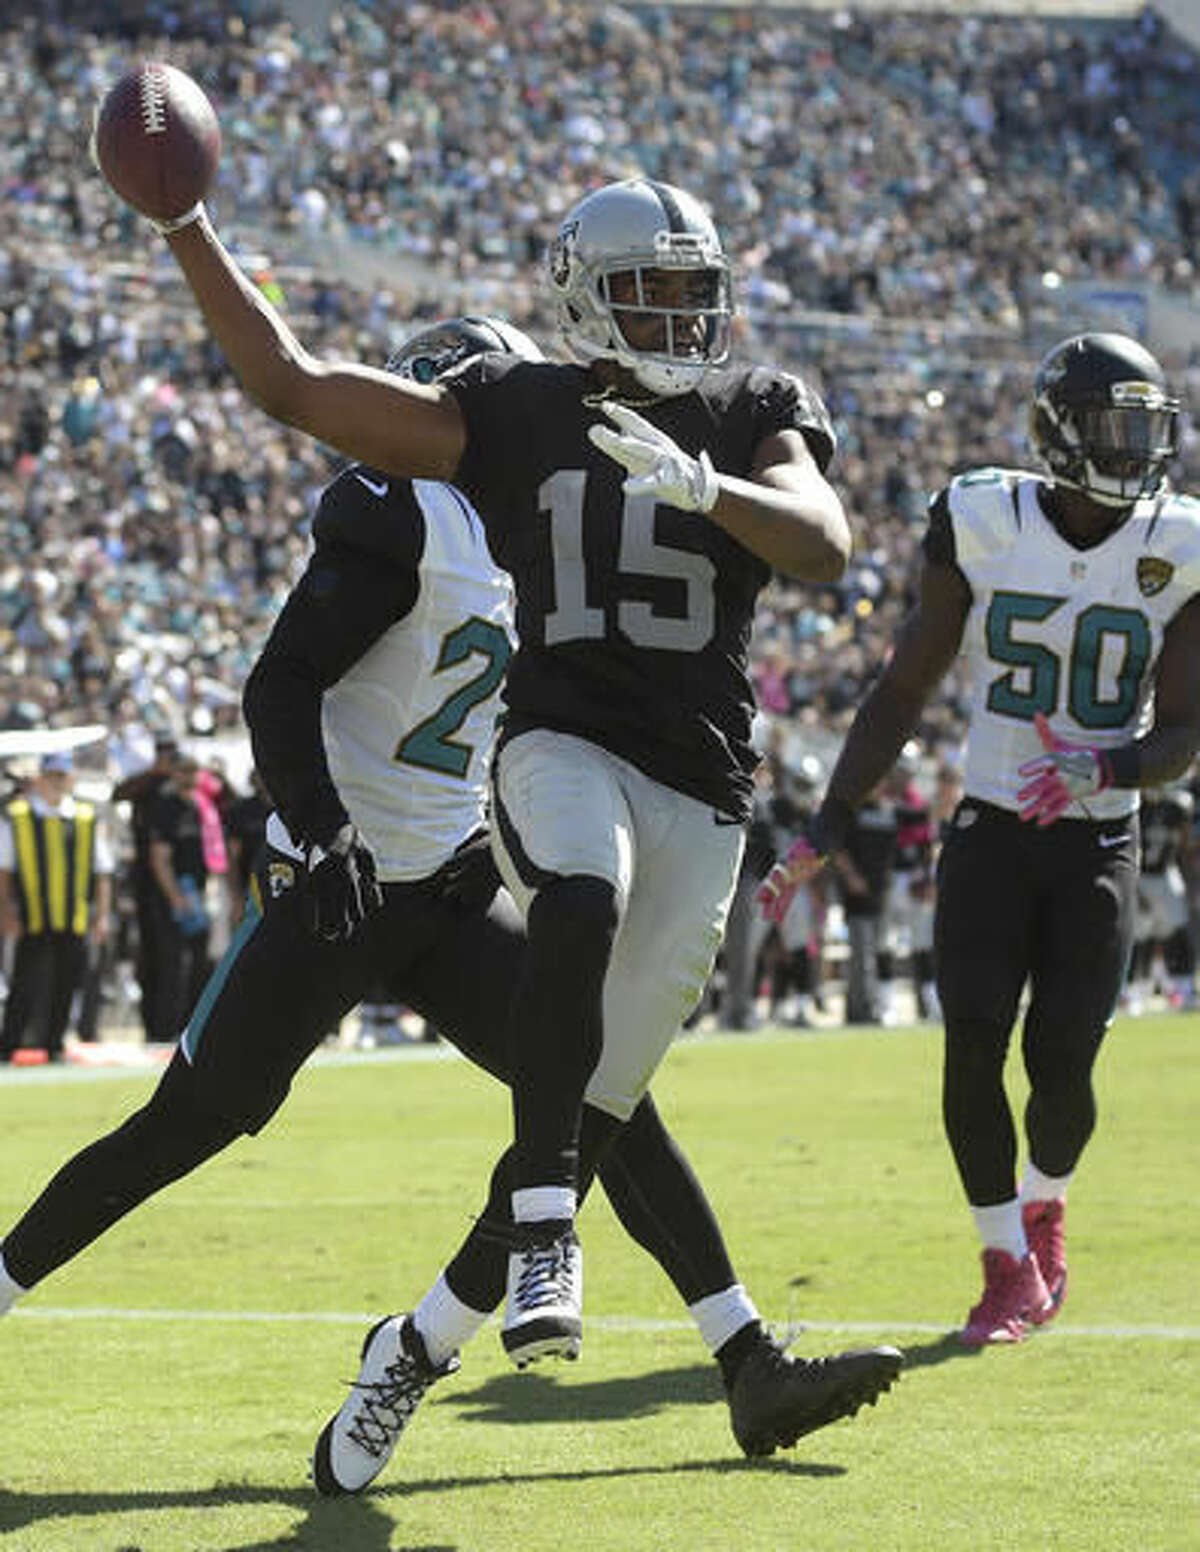 Raiders wide receiver Michael Crabtree (15) celebrates his two-yard touchdown reception in front of Jacksonville Jaguars cornerback Prince Amukamara (21) and outside linebacker Telvin Smith (50) during the second quarter of an NFL football game Sunday, Oct. 23, 2016, in Jacksonville, Fla. (AP Photo/Phelan Ebenhack)